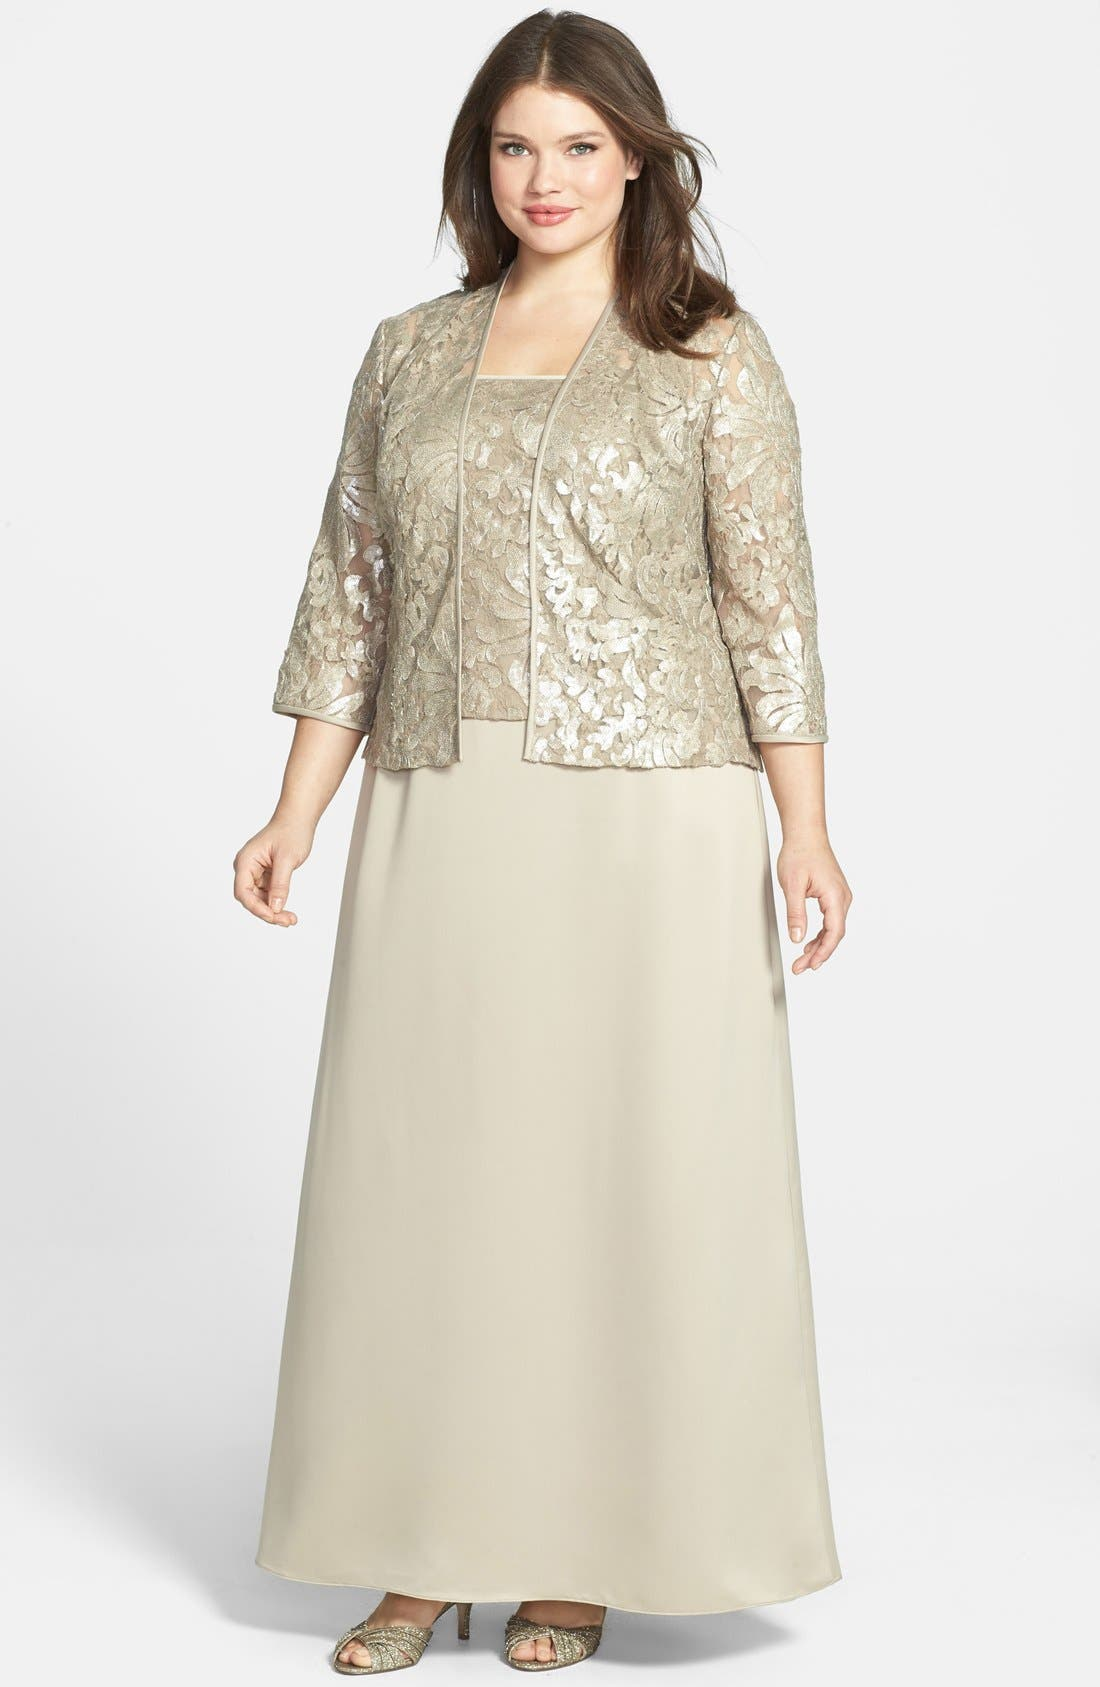 Main Image - Alex Evenings Embellished Chiffon Gown & Jacket (Plus Size)